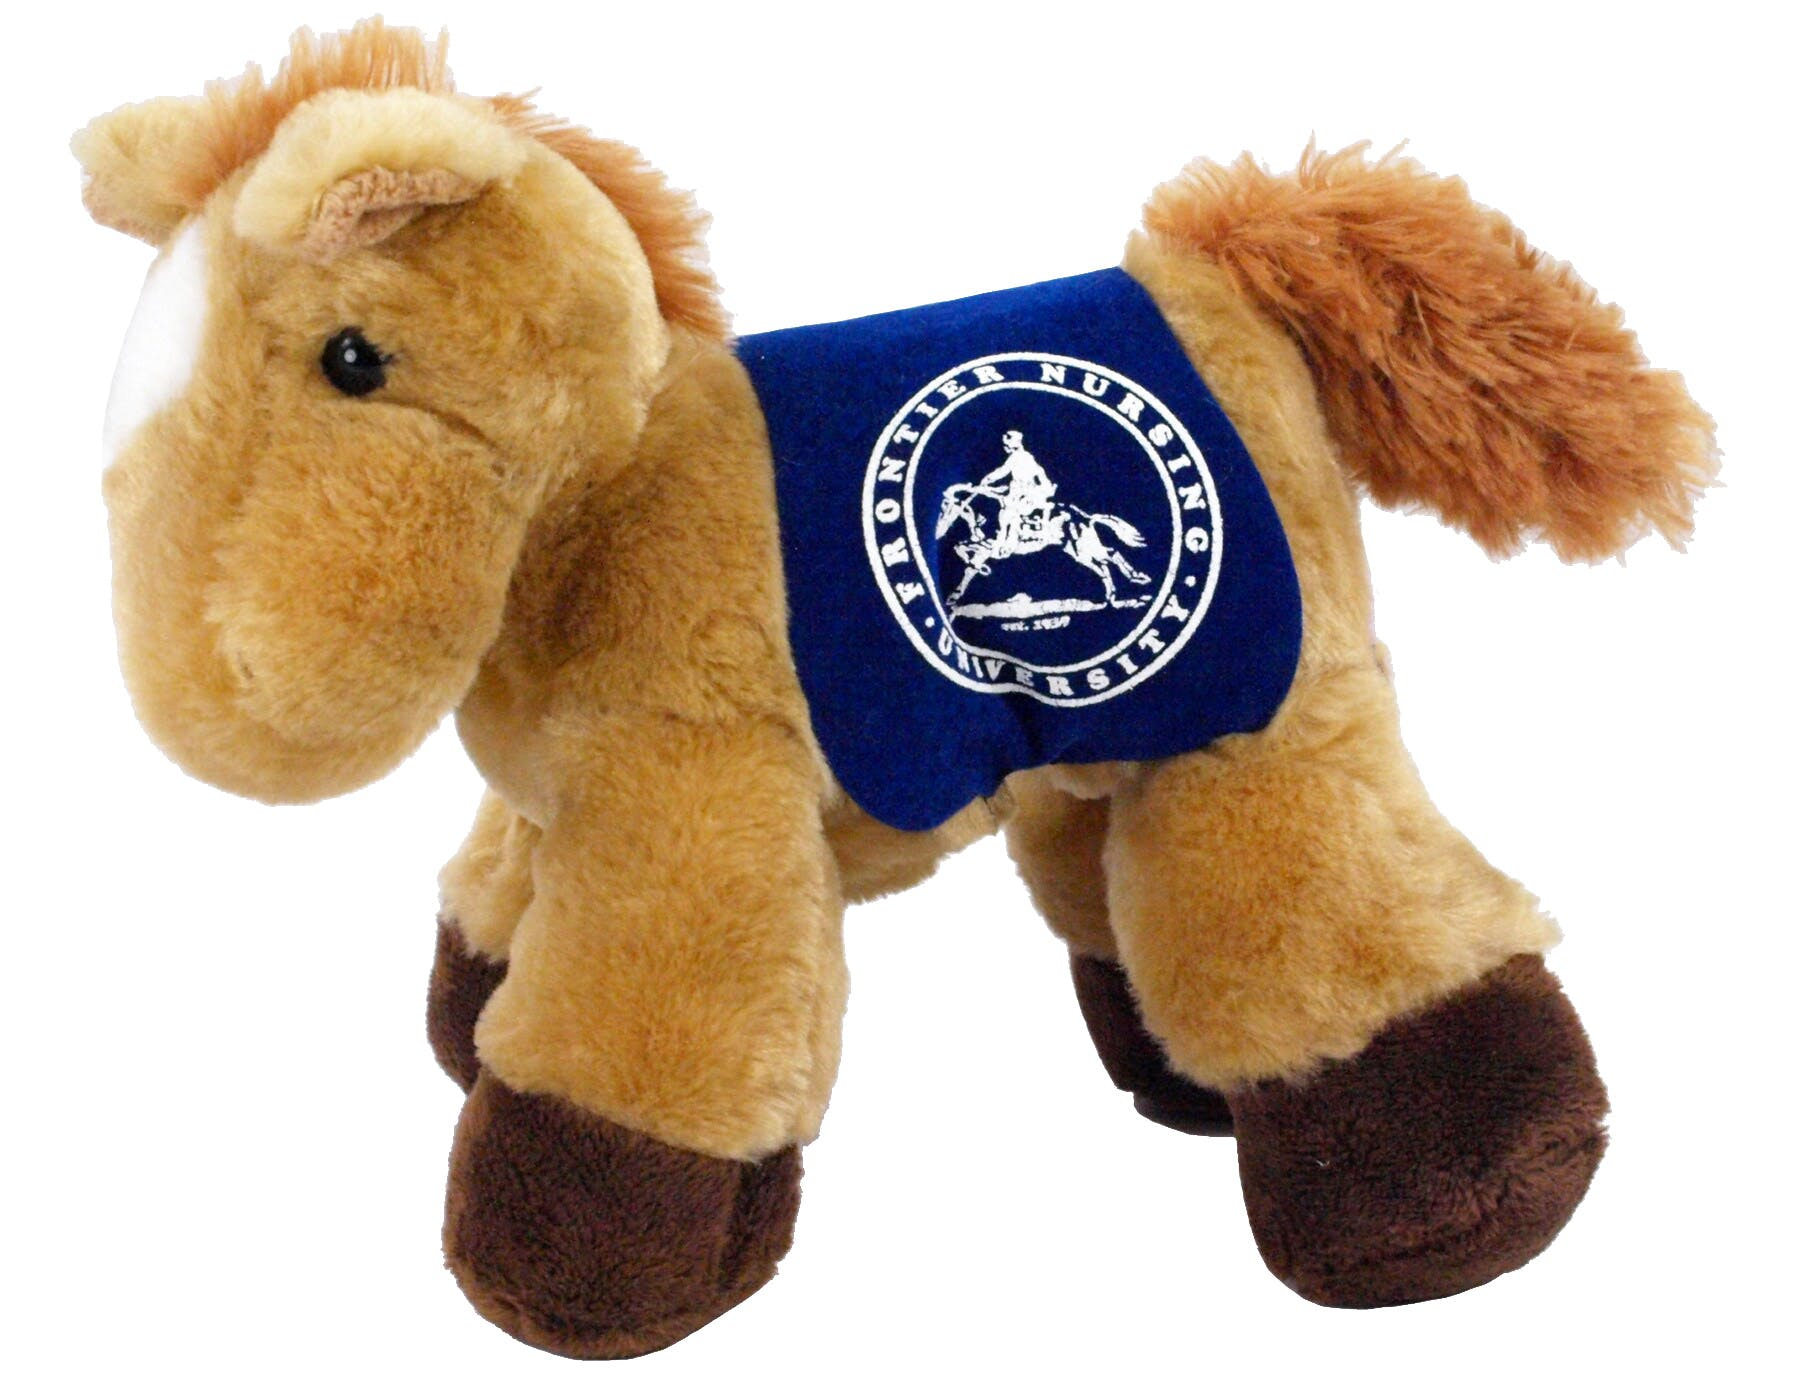 Horse with Saddle (Item # CBIKO-JAIKL) Stuffed toy sold by InkEasy